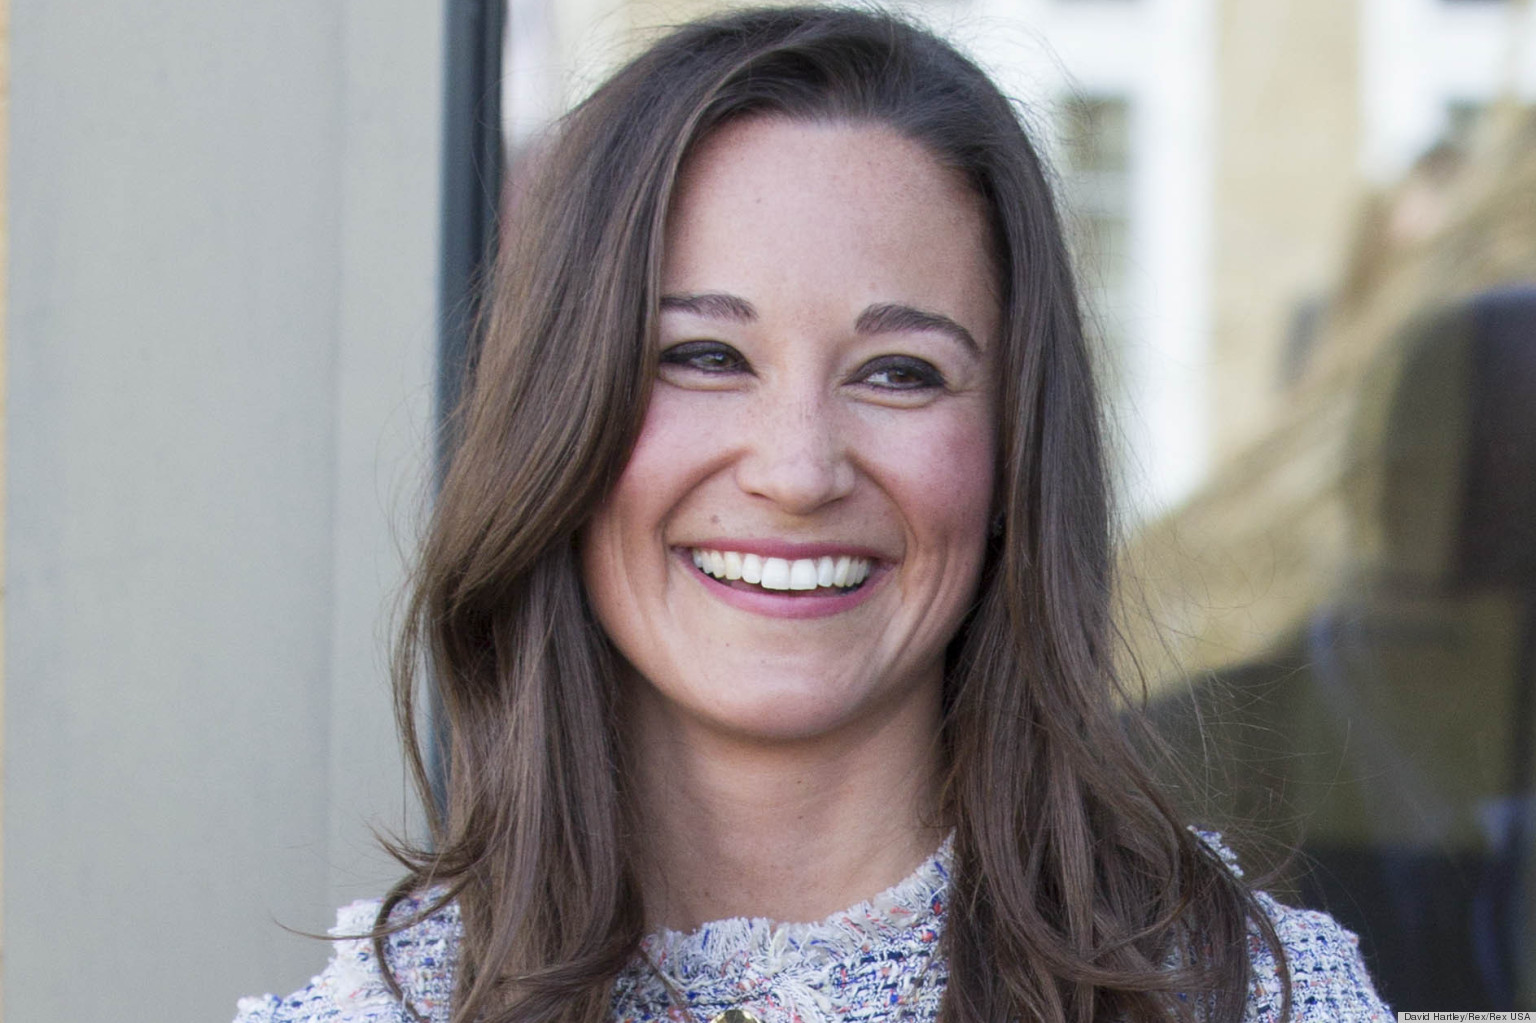 PHOTOS: The Pippa Middleton Effect Doesn't Seem To Exist